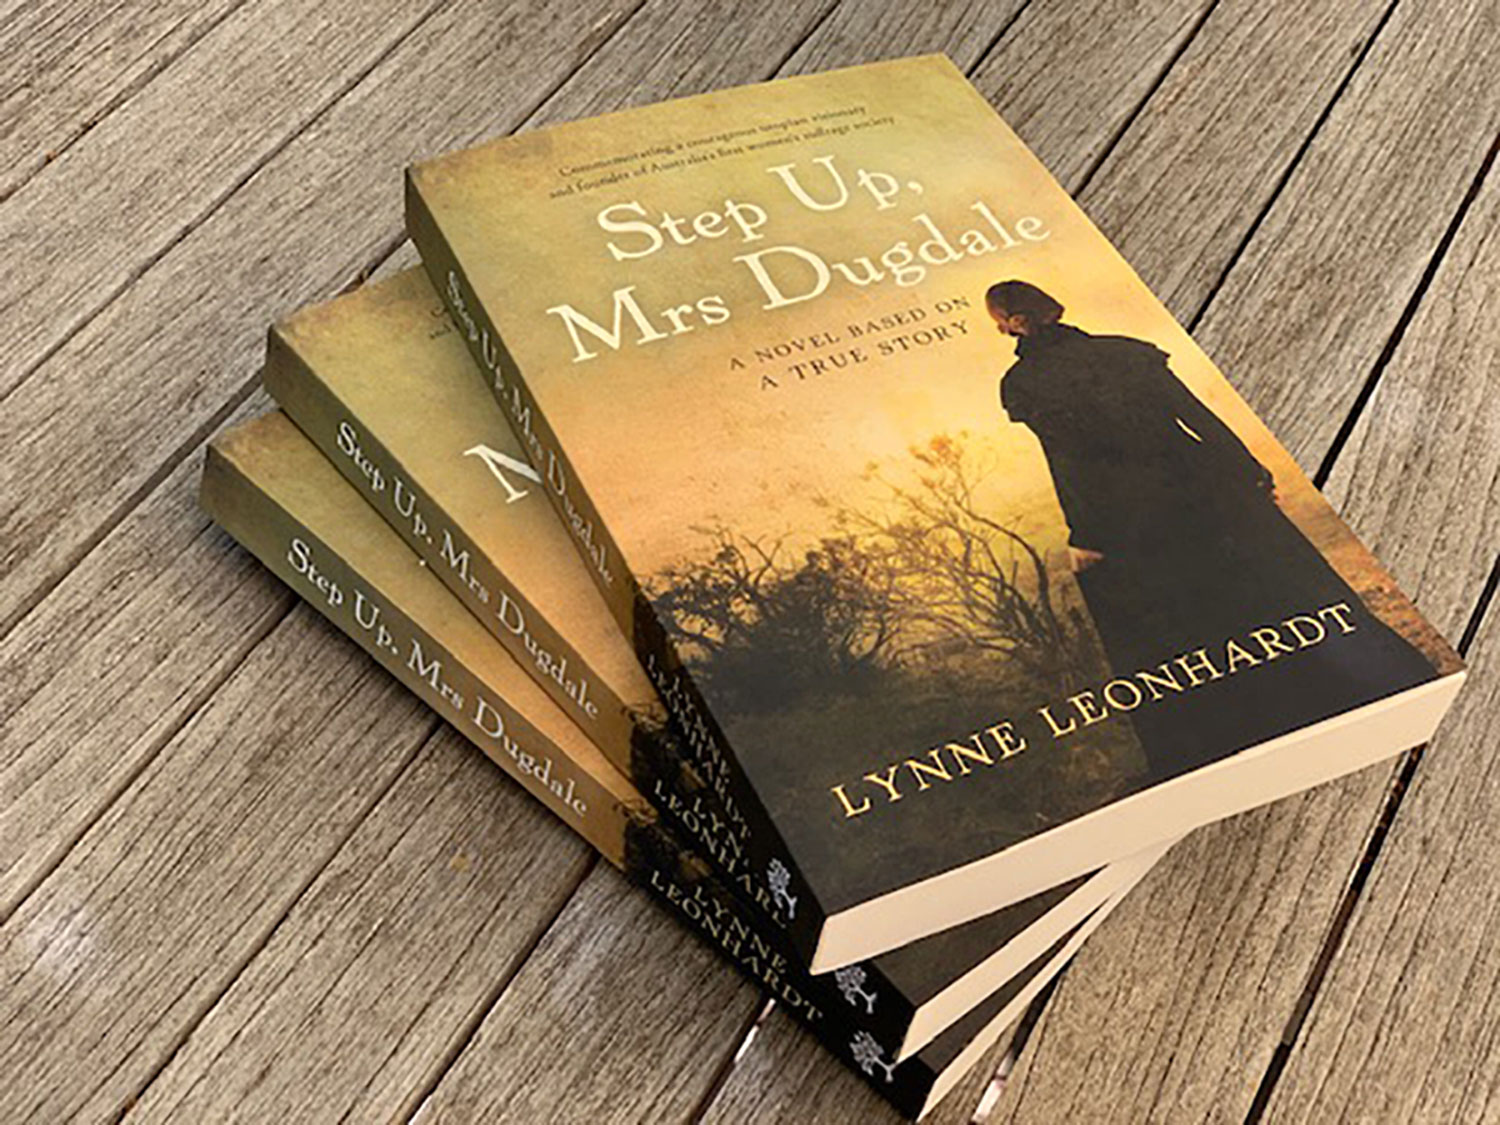 Lynne_Leonhardt_Australian_Author_Writer_Book_Step_Up_Mrs_Dugdale_Hero.jpg